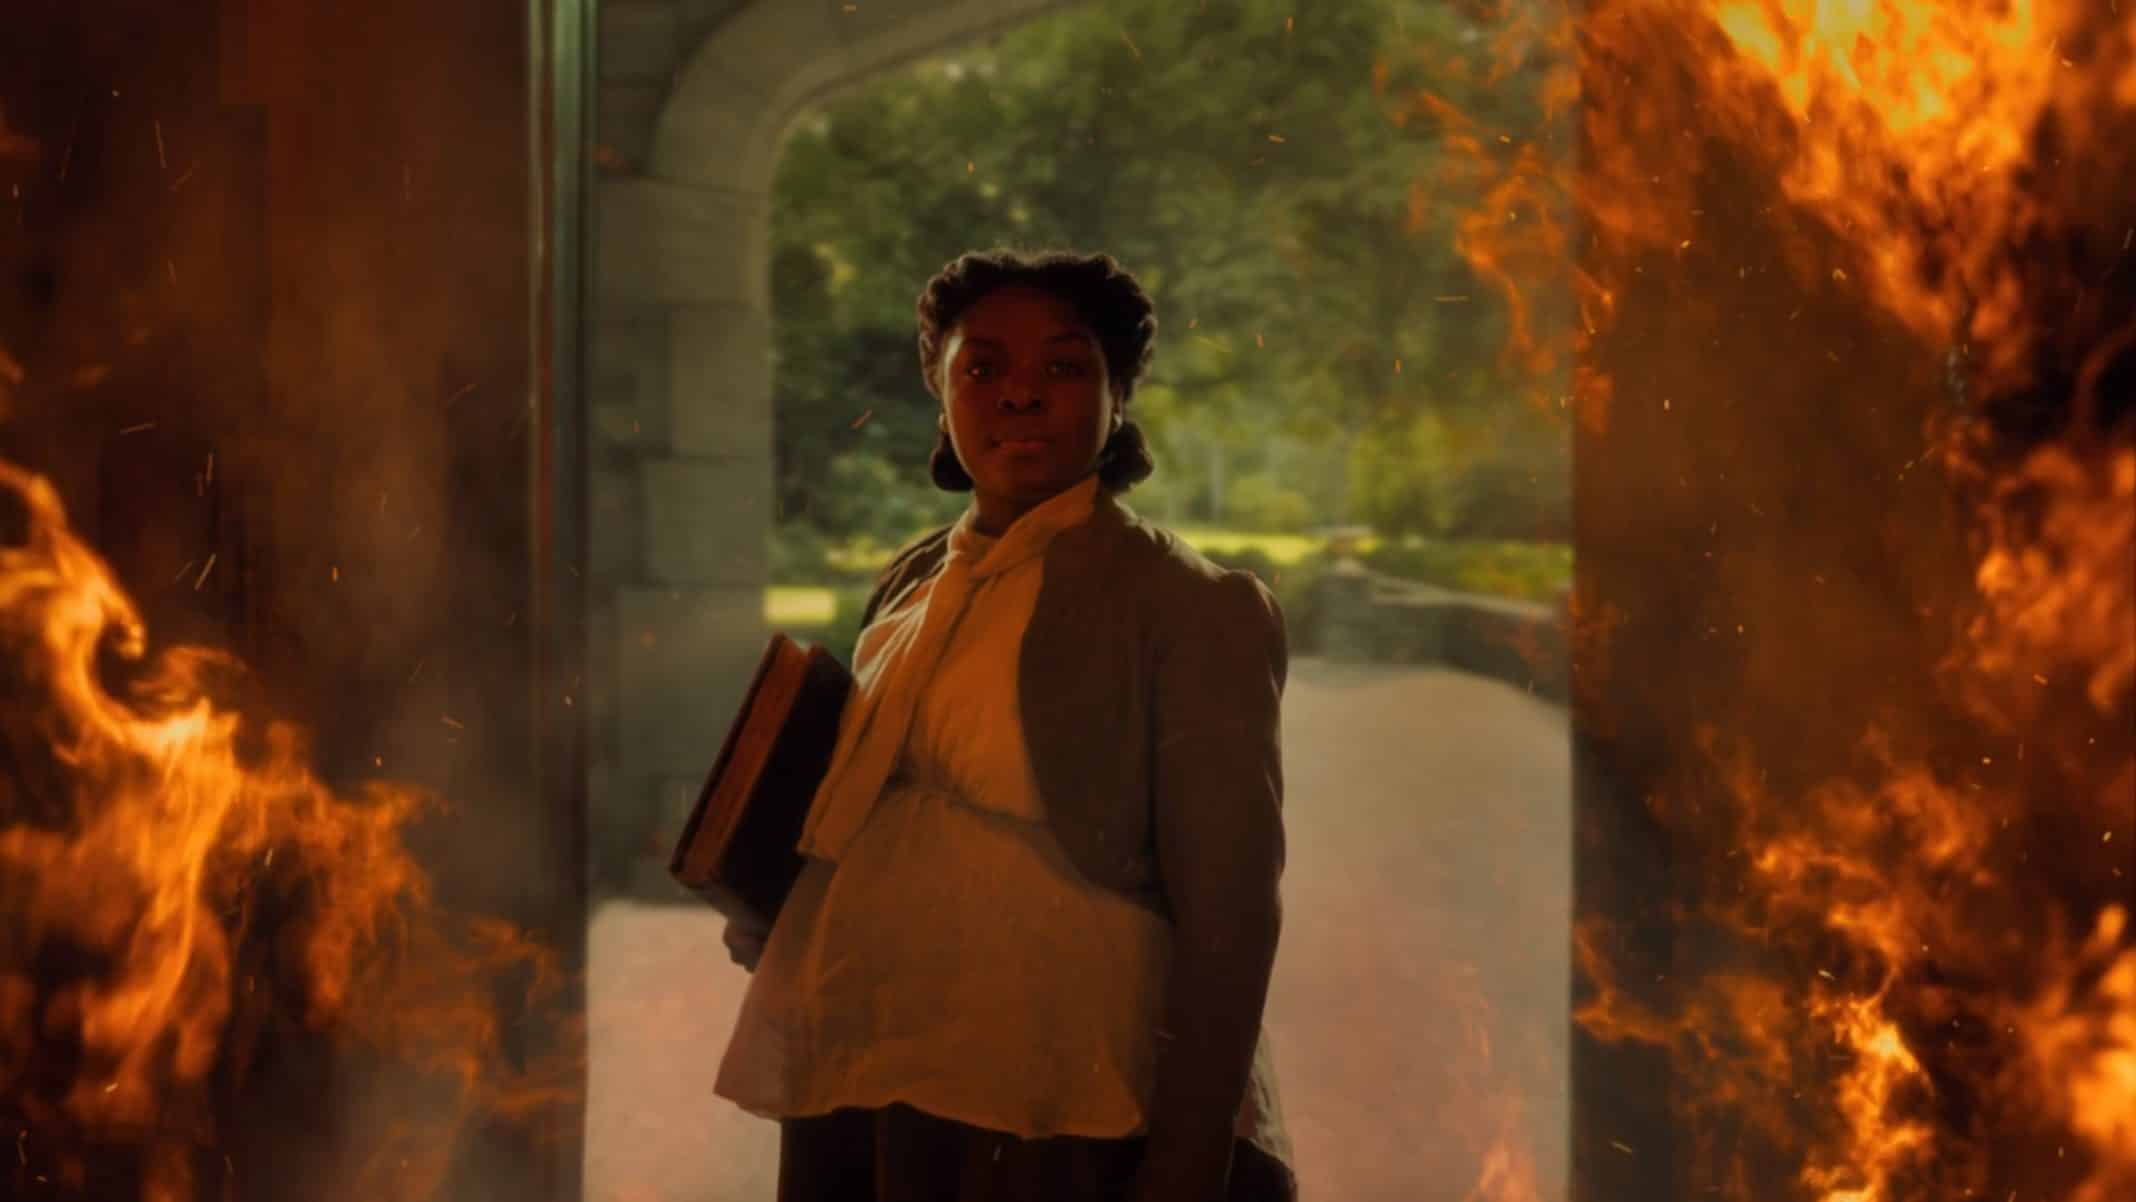 Hannah (Joaquina Kalukango) in a doorway, surrounded by fire.